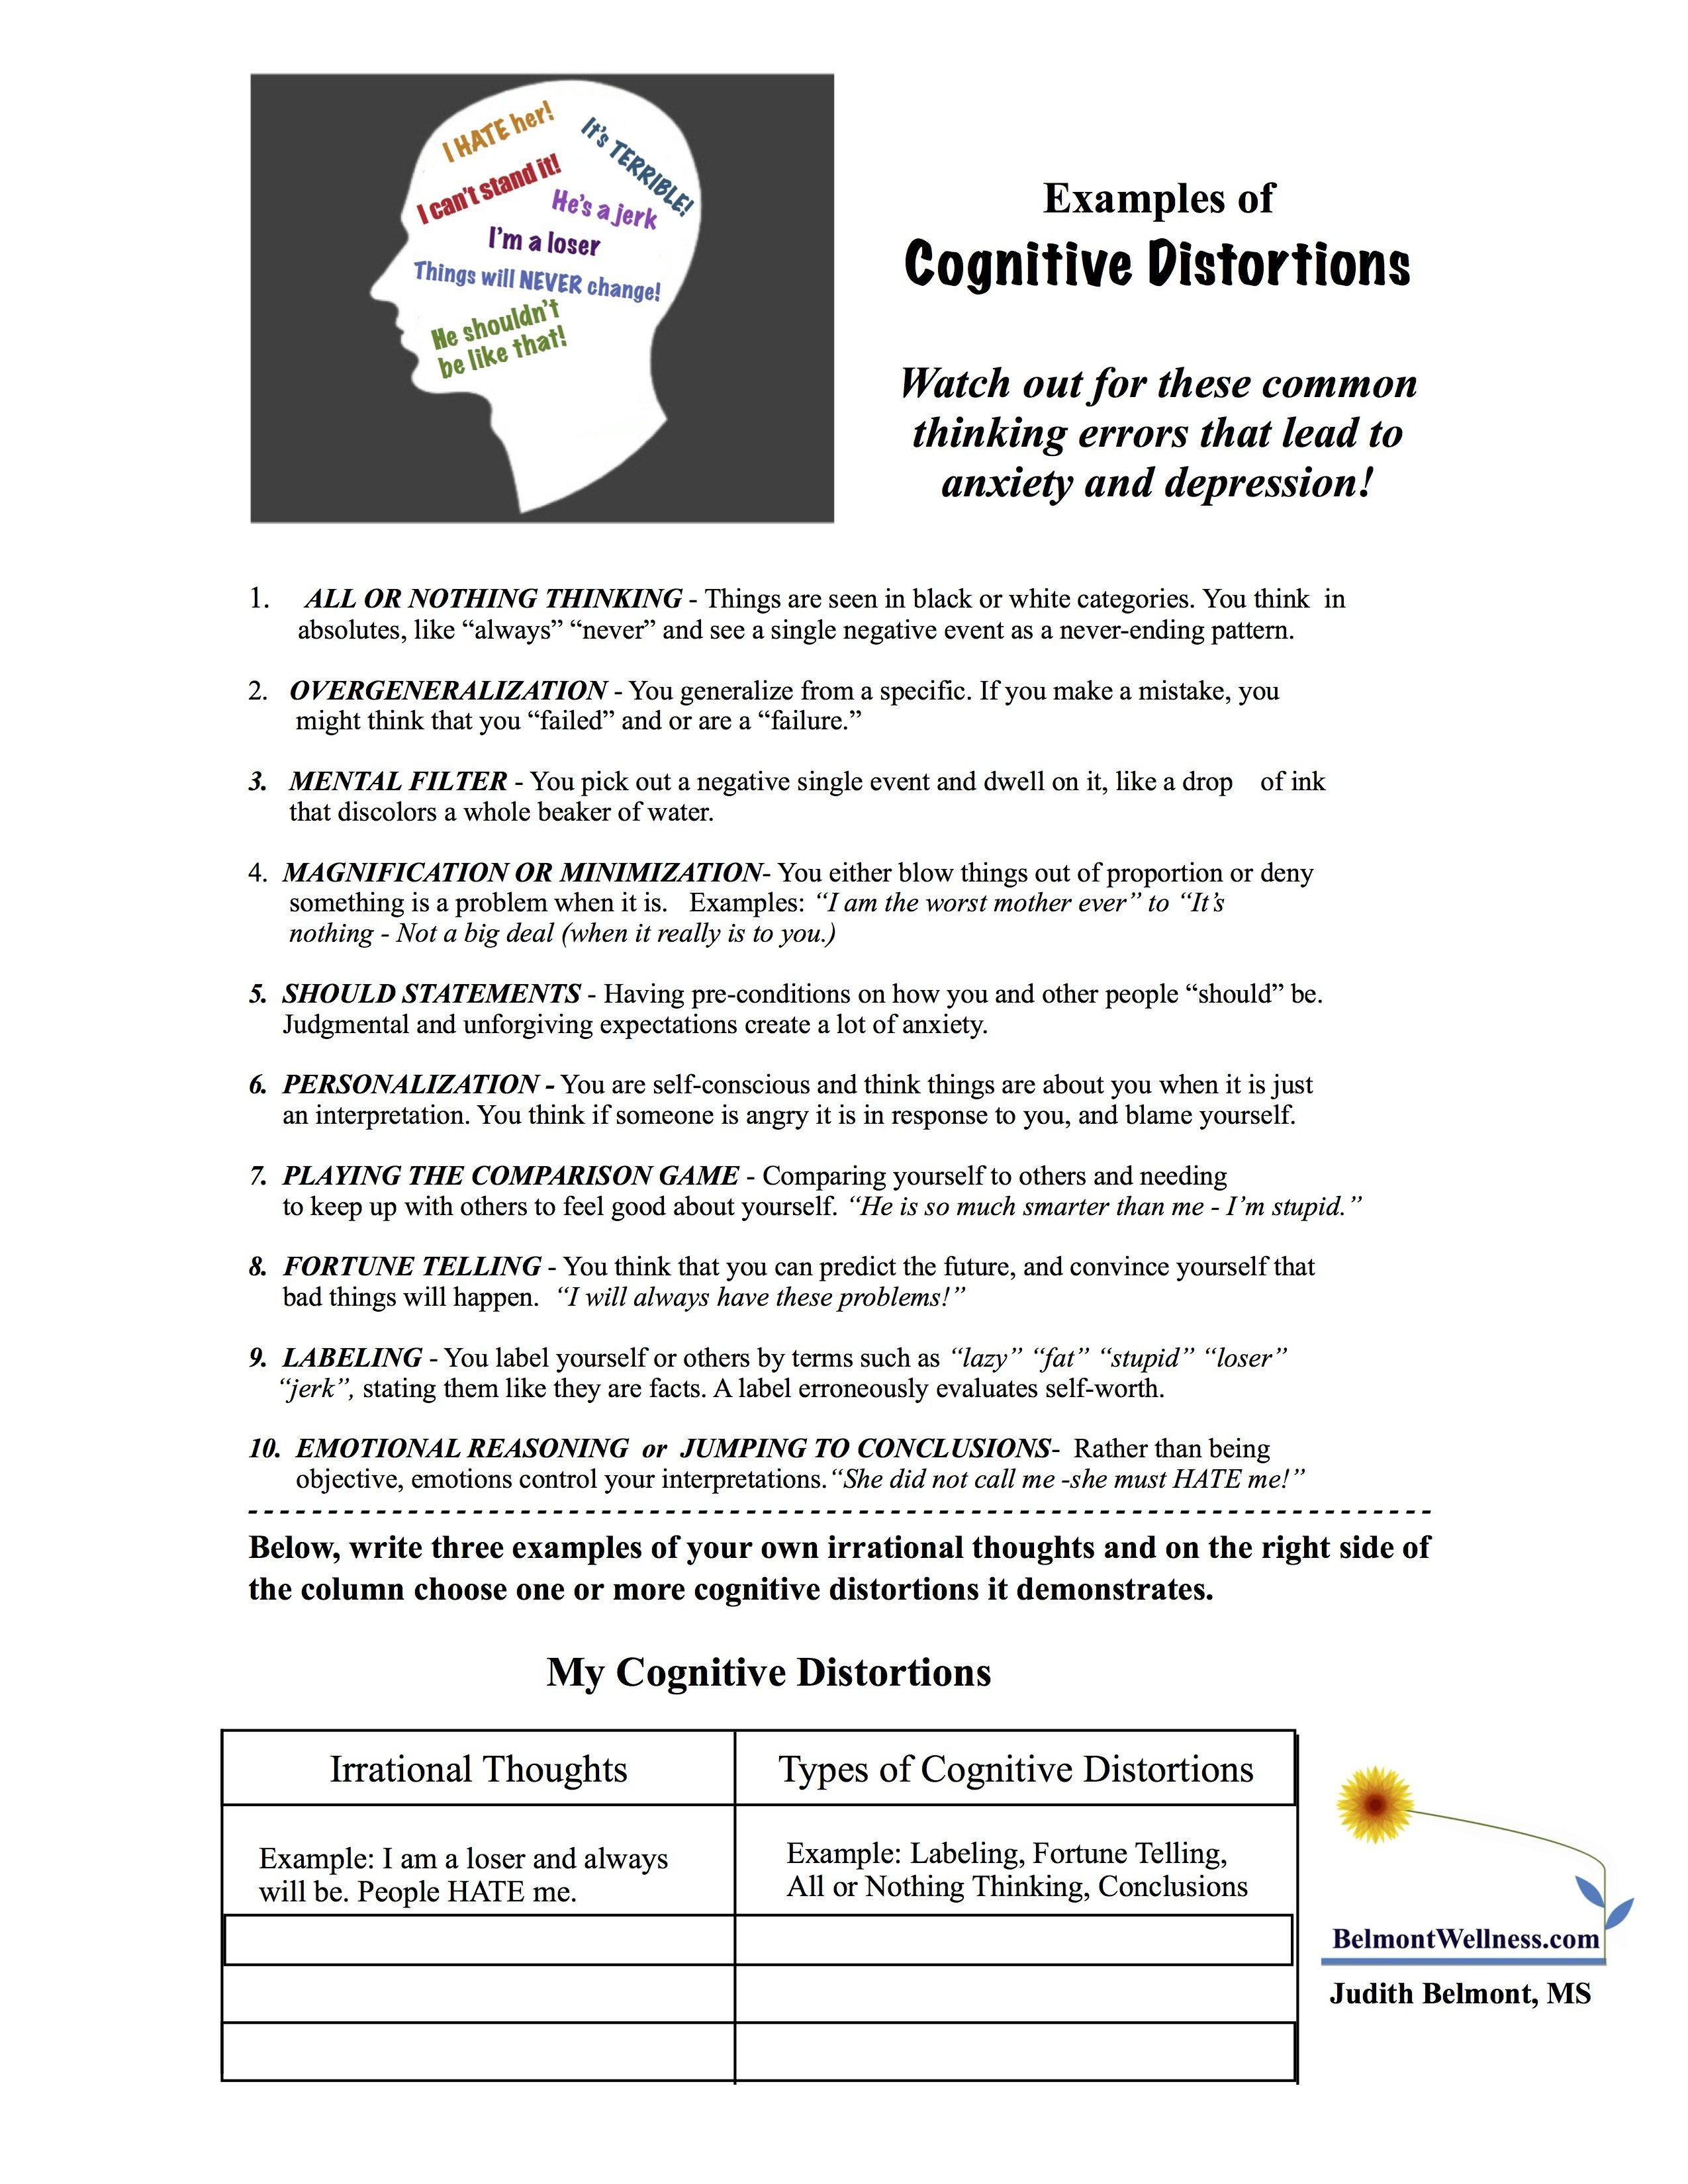 Free Addiction Counseling Worksheets